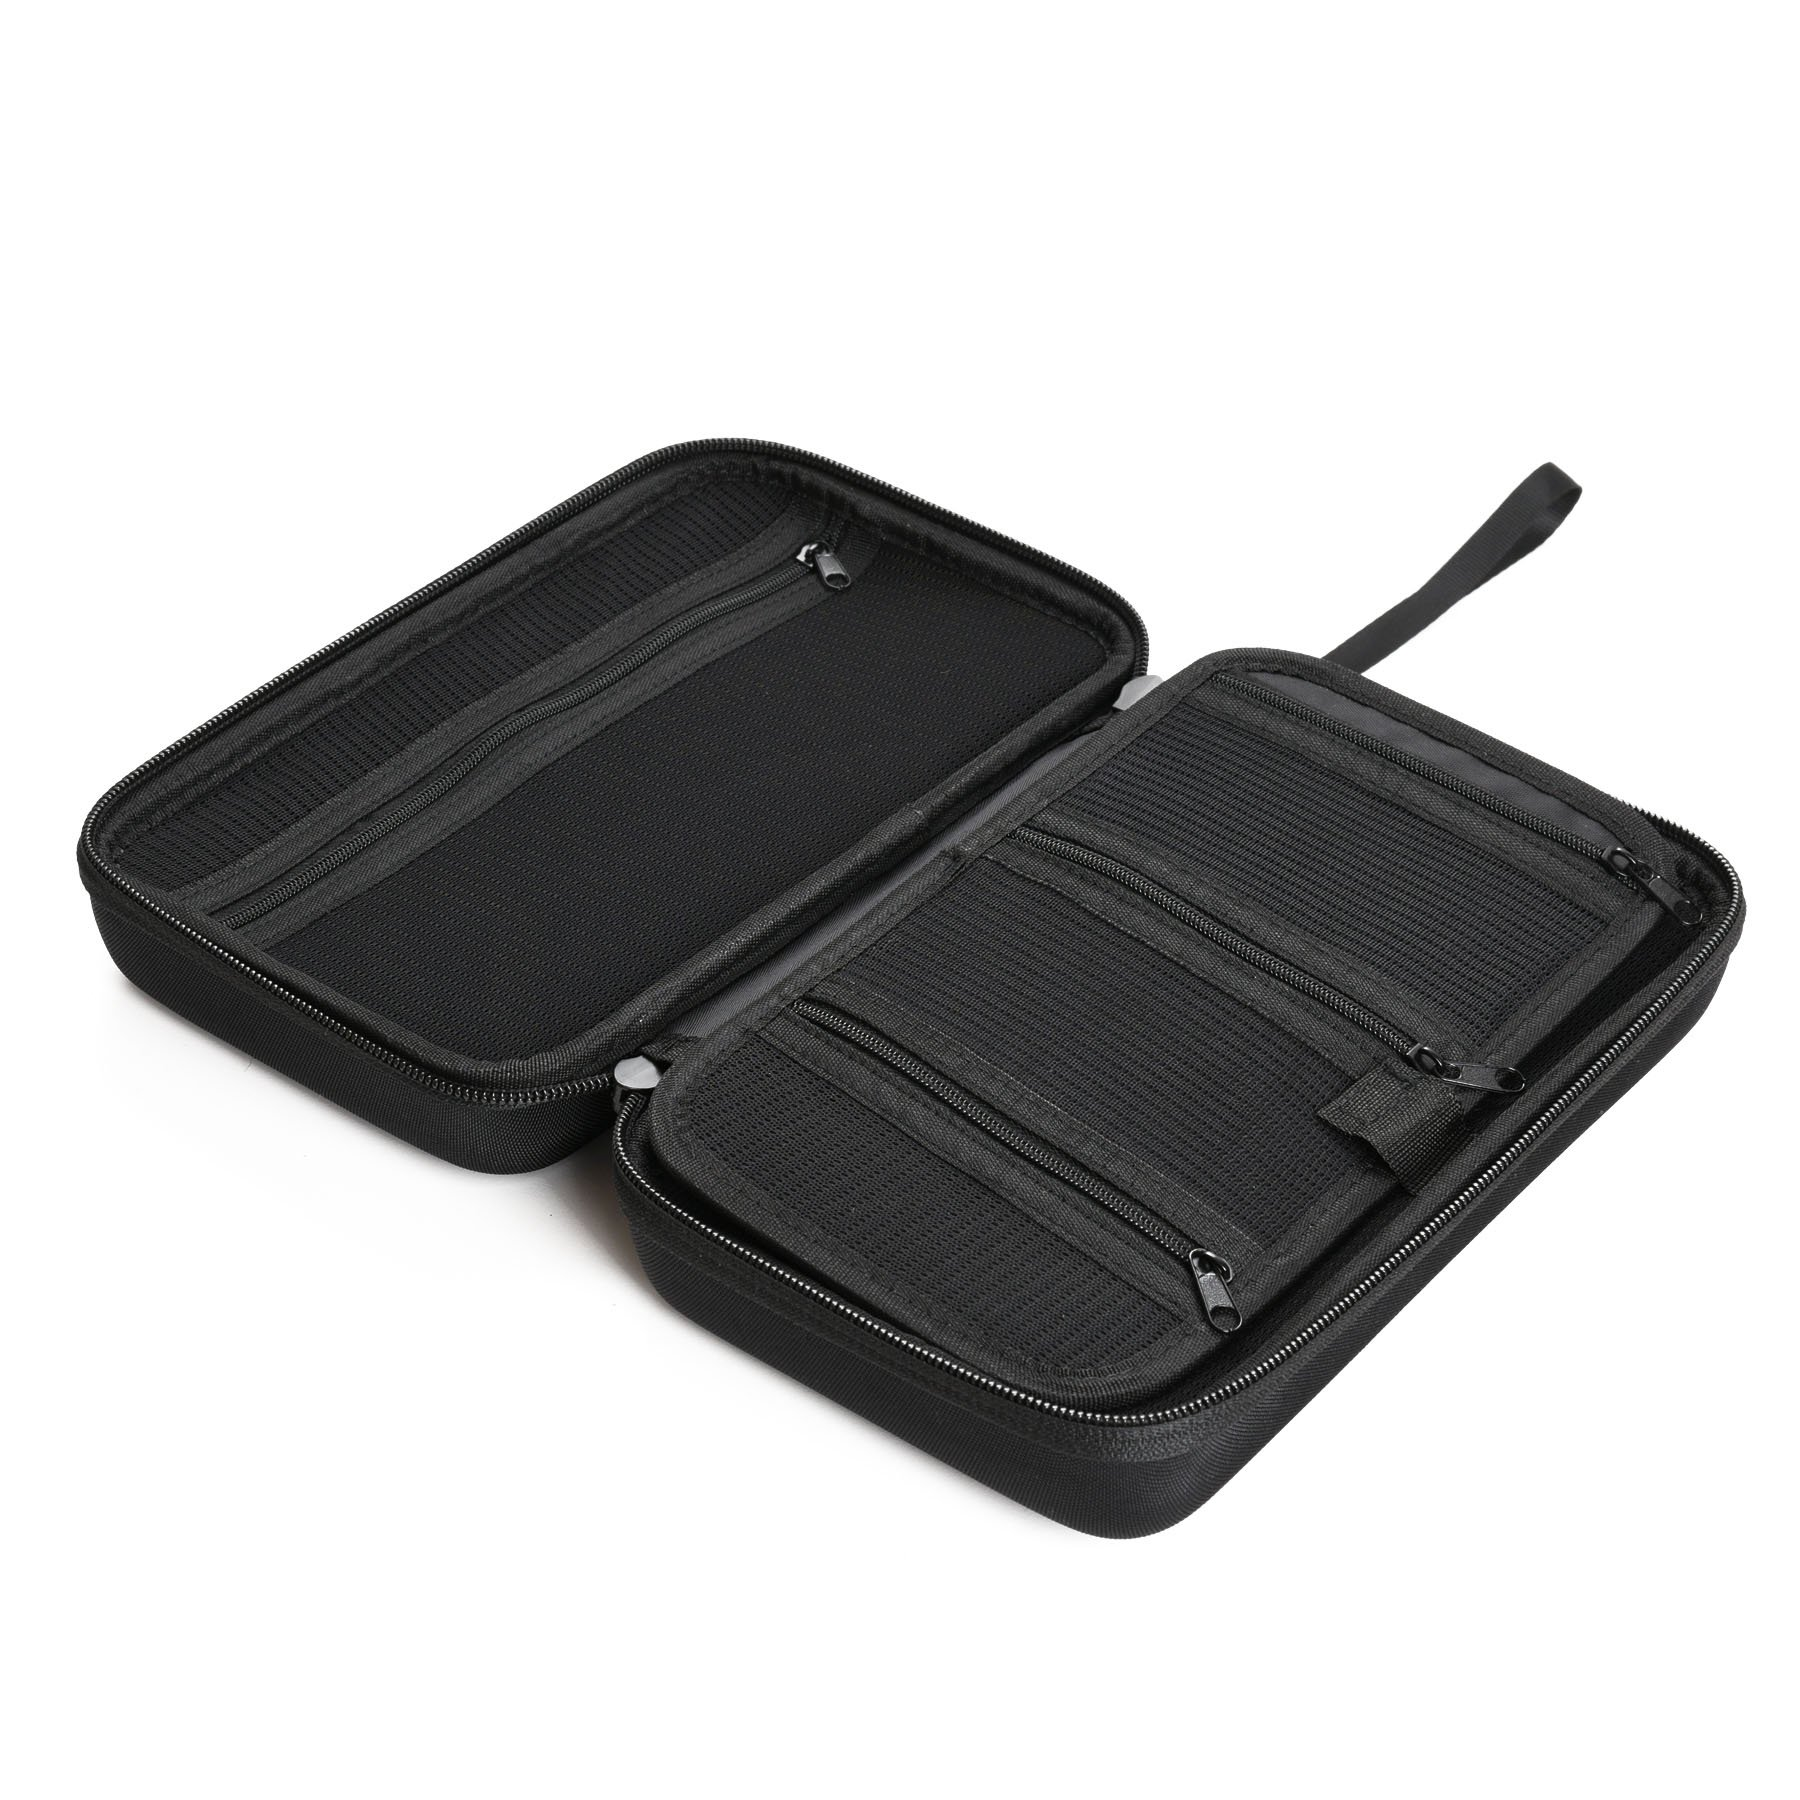 """Caseling Universal Electronics/Accessories Hard Travel Organizer Carrying Case Bag, 9.8"""" x 5.6""""x 2.8"""" - Black by caseling (Image #4)"""